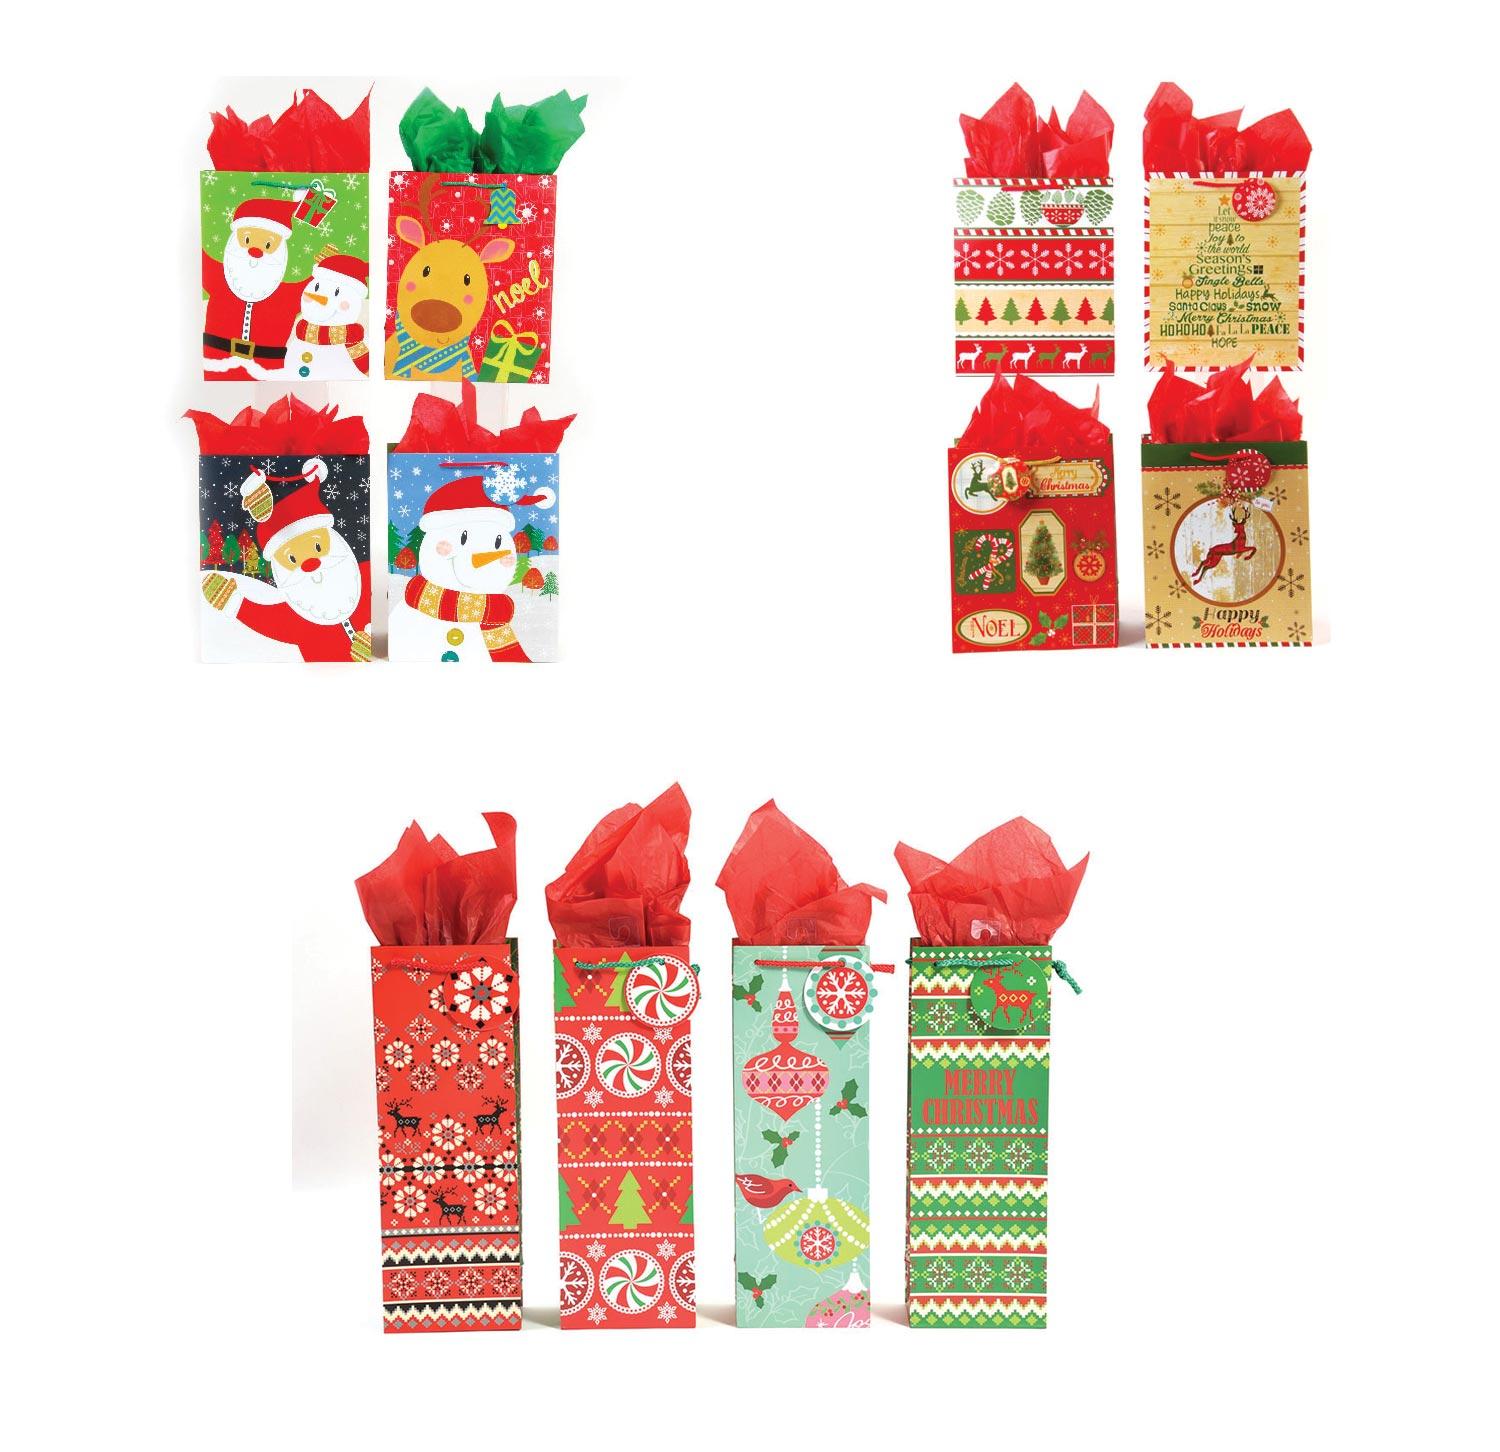 Assorted Christmas gift bag special with free Christmas cards